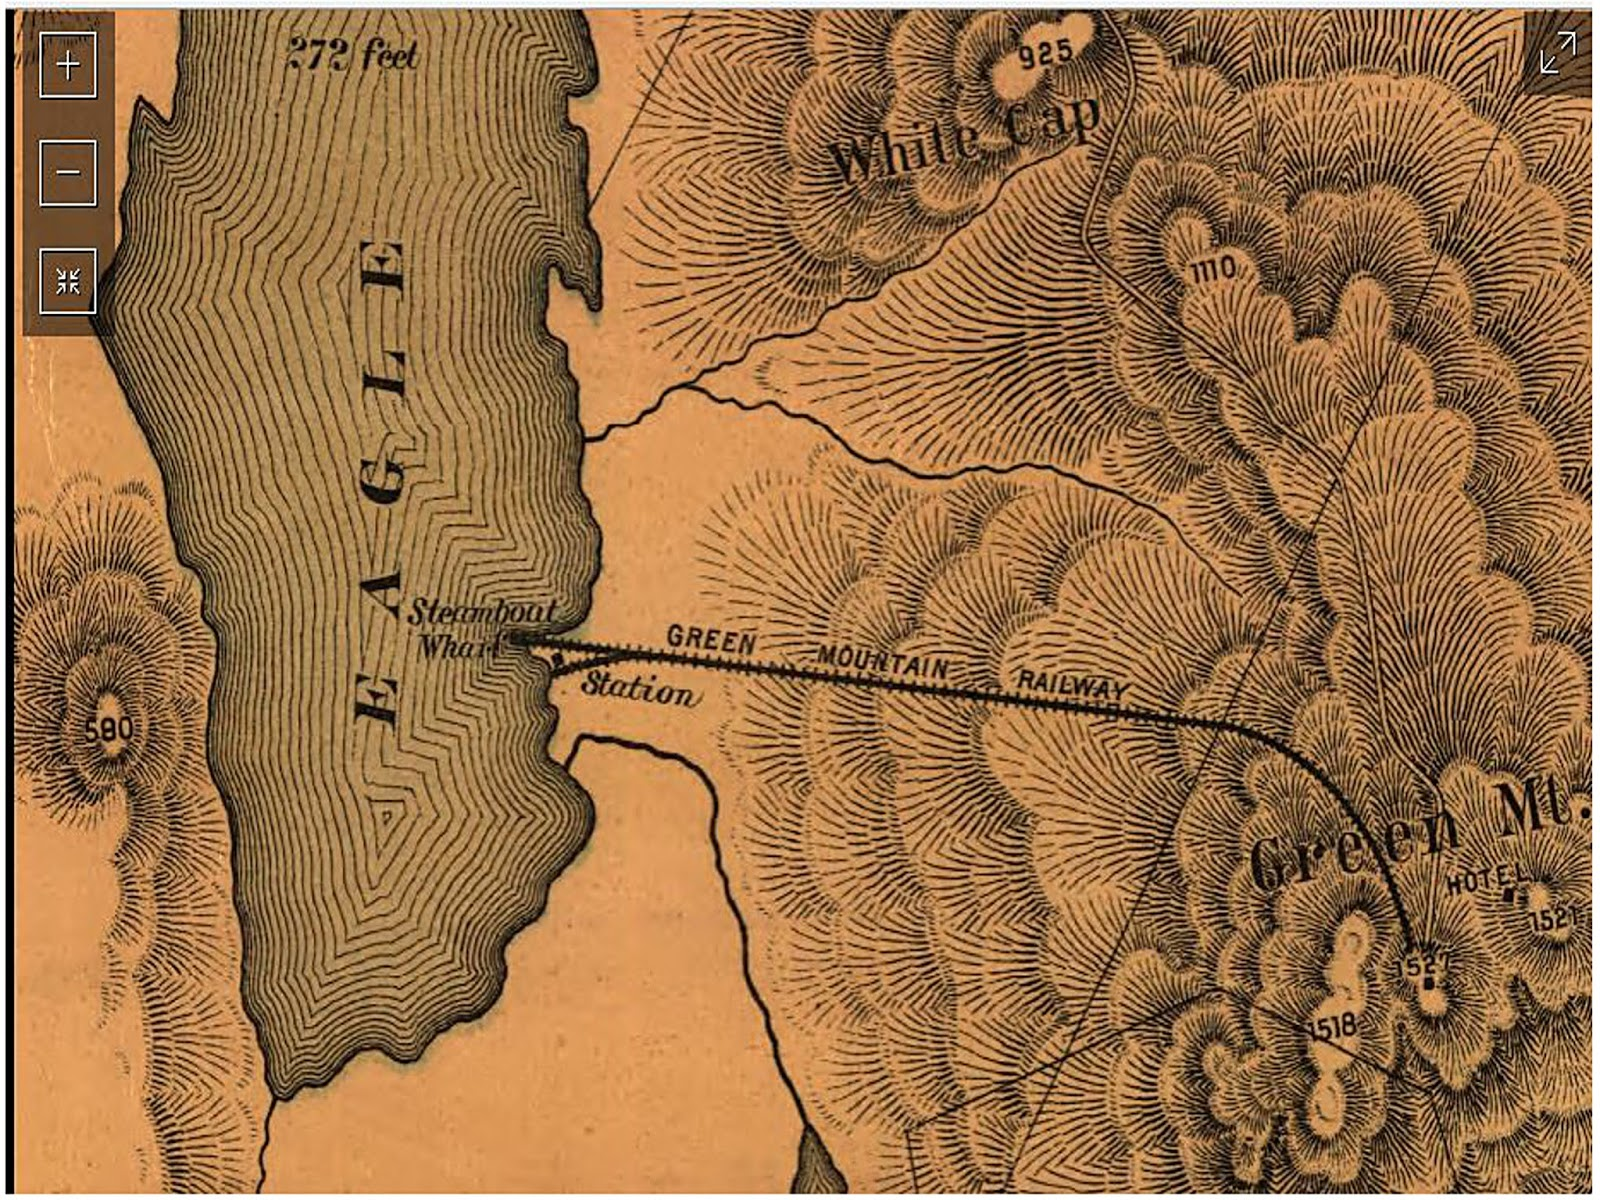 on this old map you can clearly see how the tracks extended out onto that narrow strip of land which is a short ways from the wooden bridge and the brook